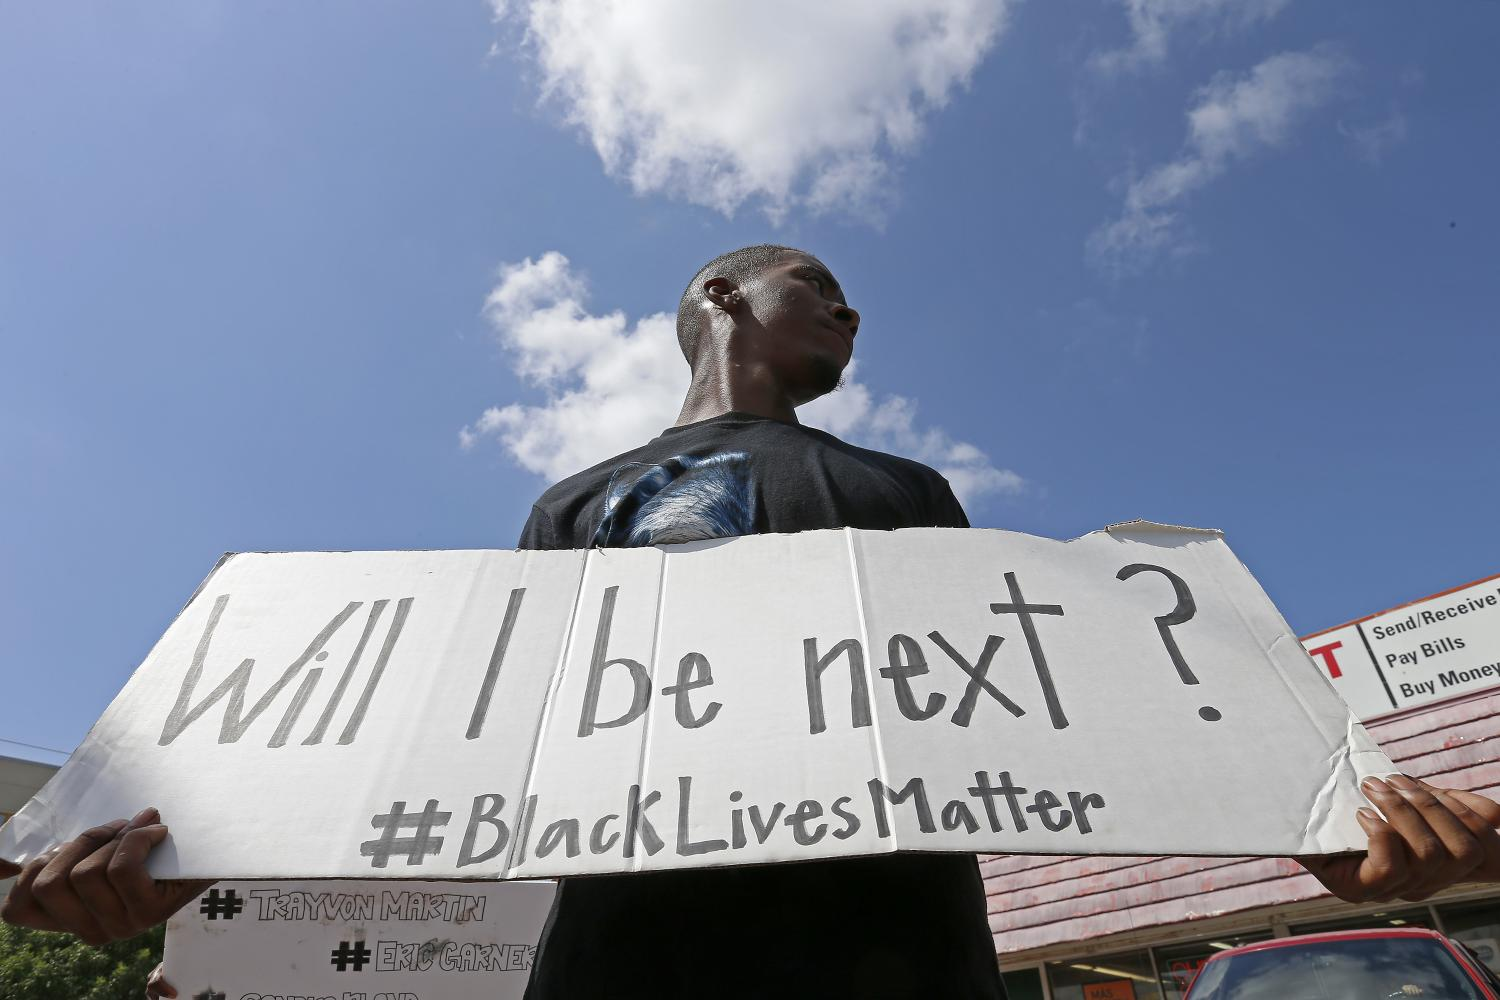 Black lives and their minds matter, and that is not up for debate